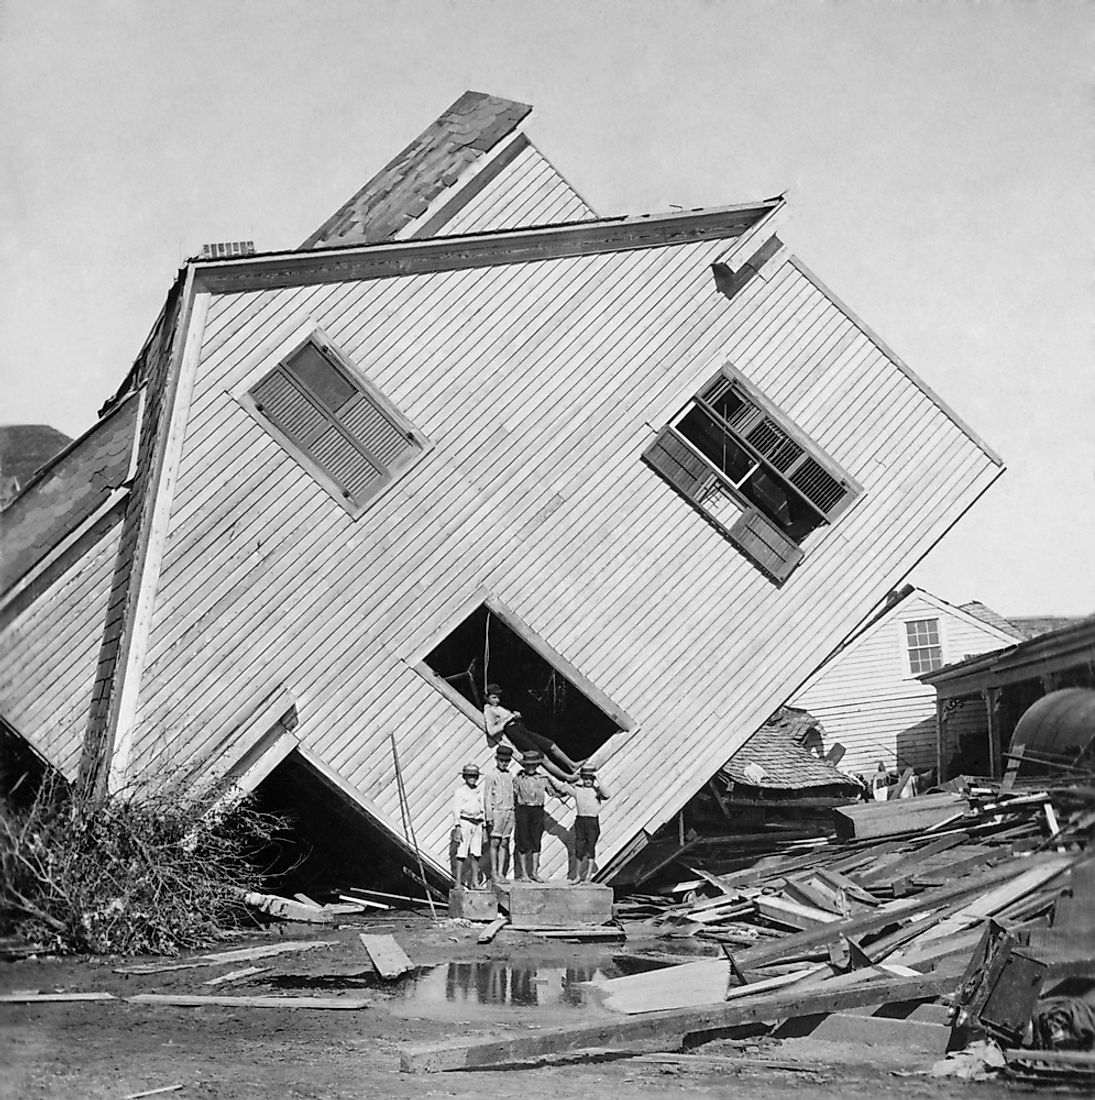 A house turned on its side from the force of the disastrous Galveston Hurricane in 1900. Editorial credit: Everett Historical / Shutterstock.com.